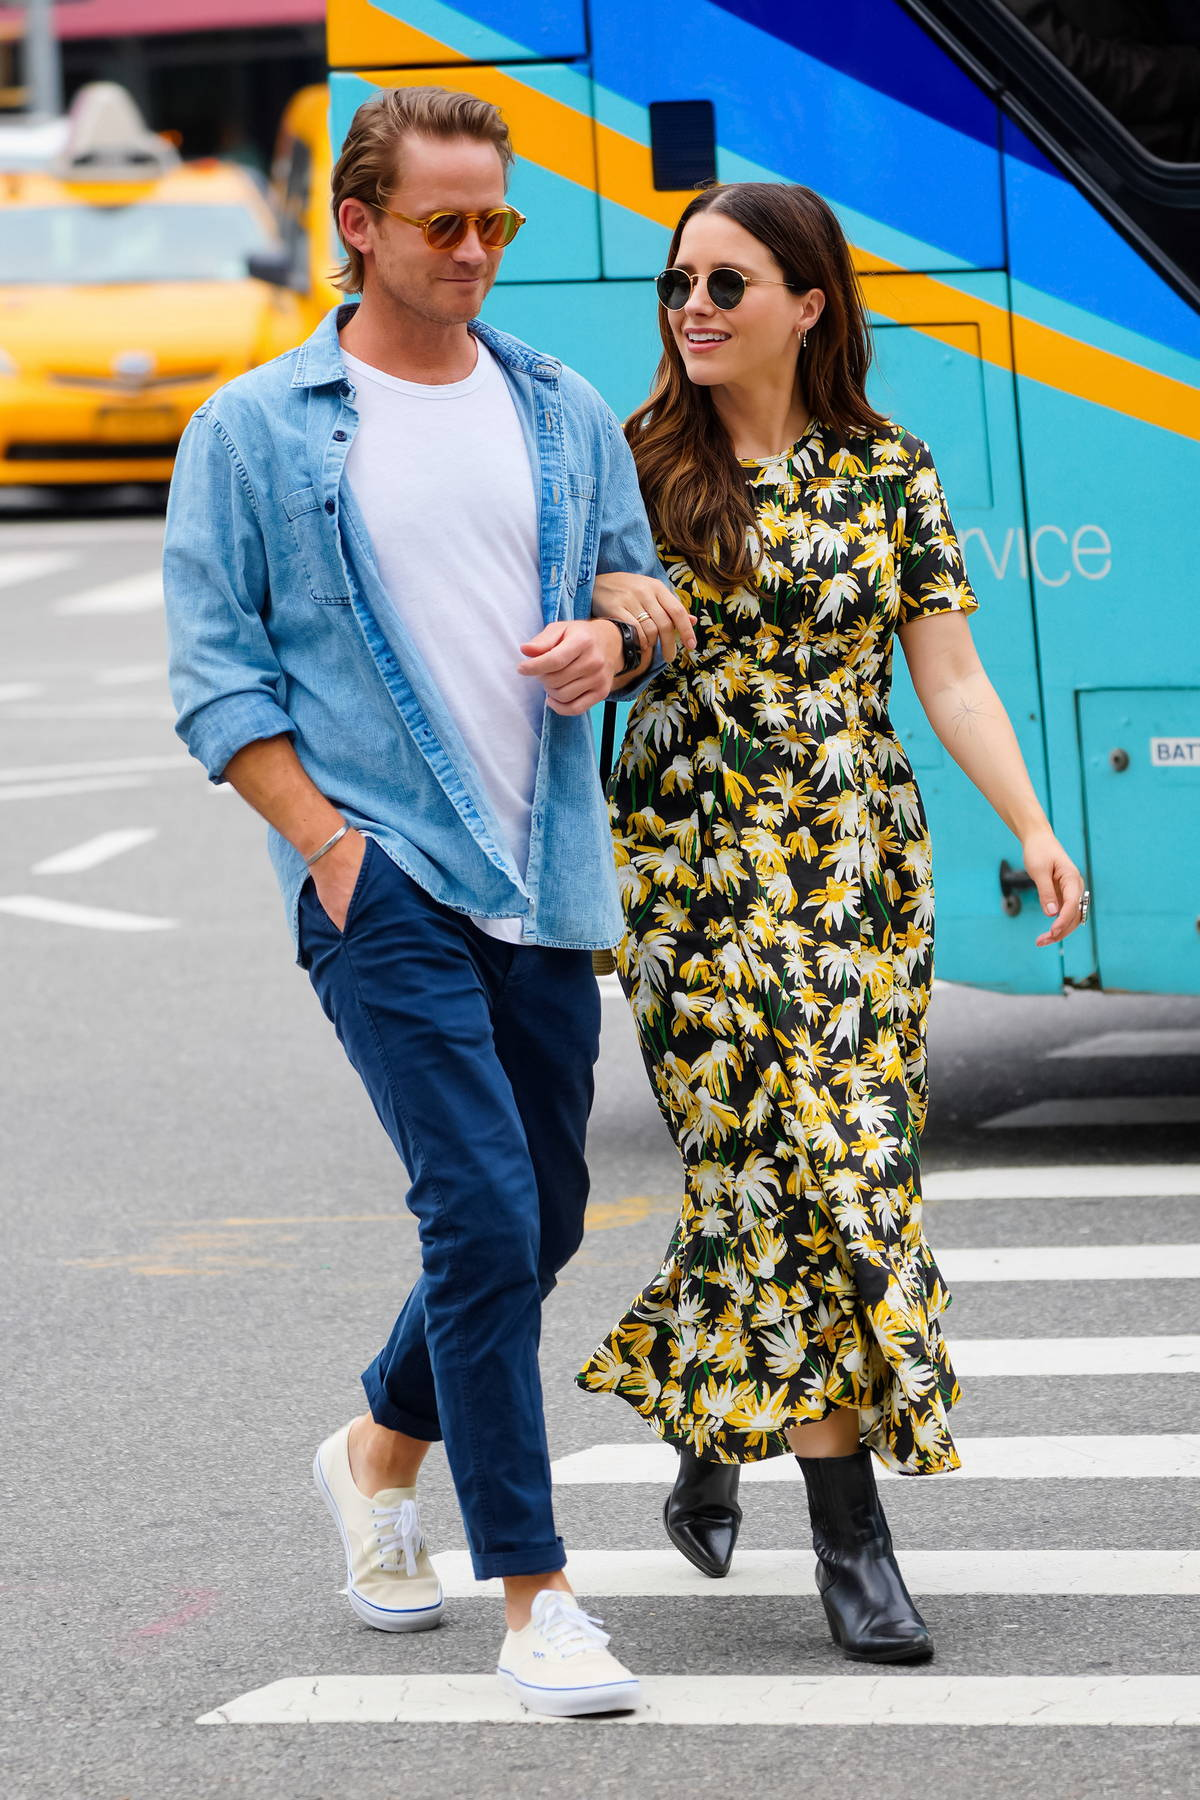 Sophia Bush wears a floral print summer dress while out for stroll with boyfriend Grant Hughes in New York City